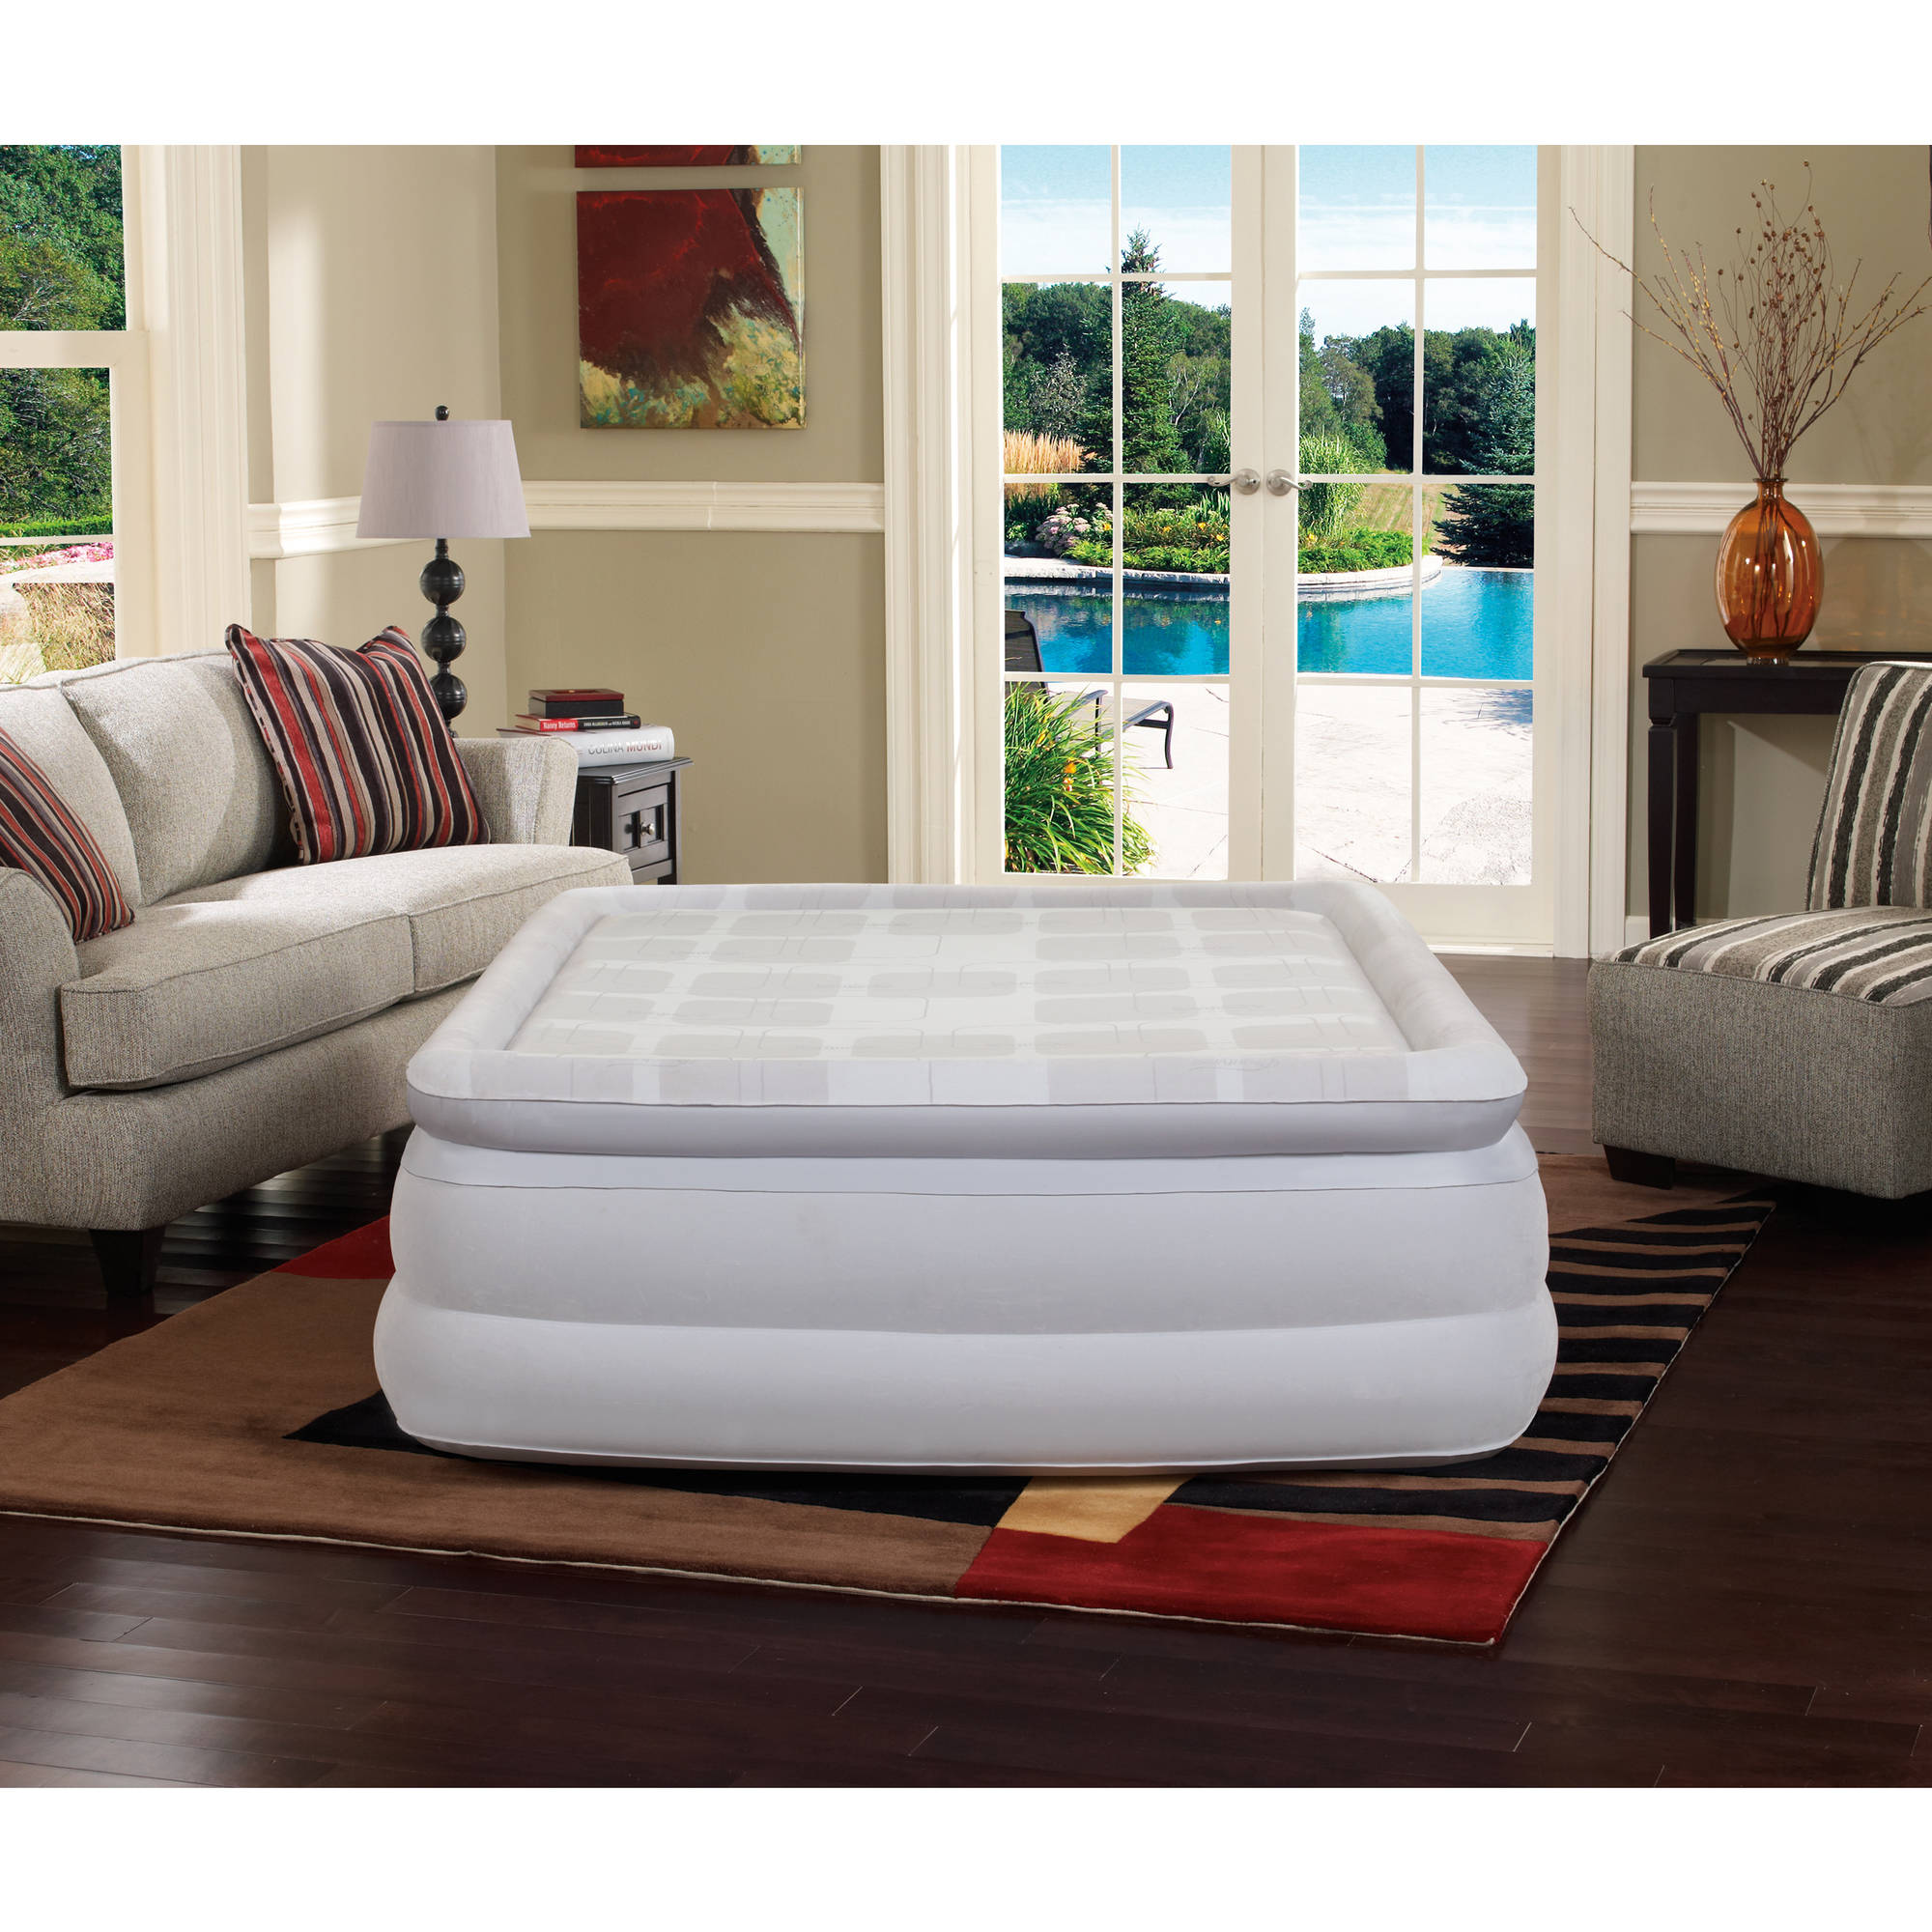 Simmons Beautyrest Recharge Shakespeare Firm Mattress | Simmons Beautyrest Mattress | Types of Simmons Beautyrest Mattresses